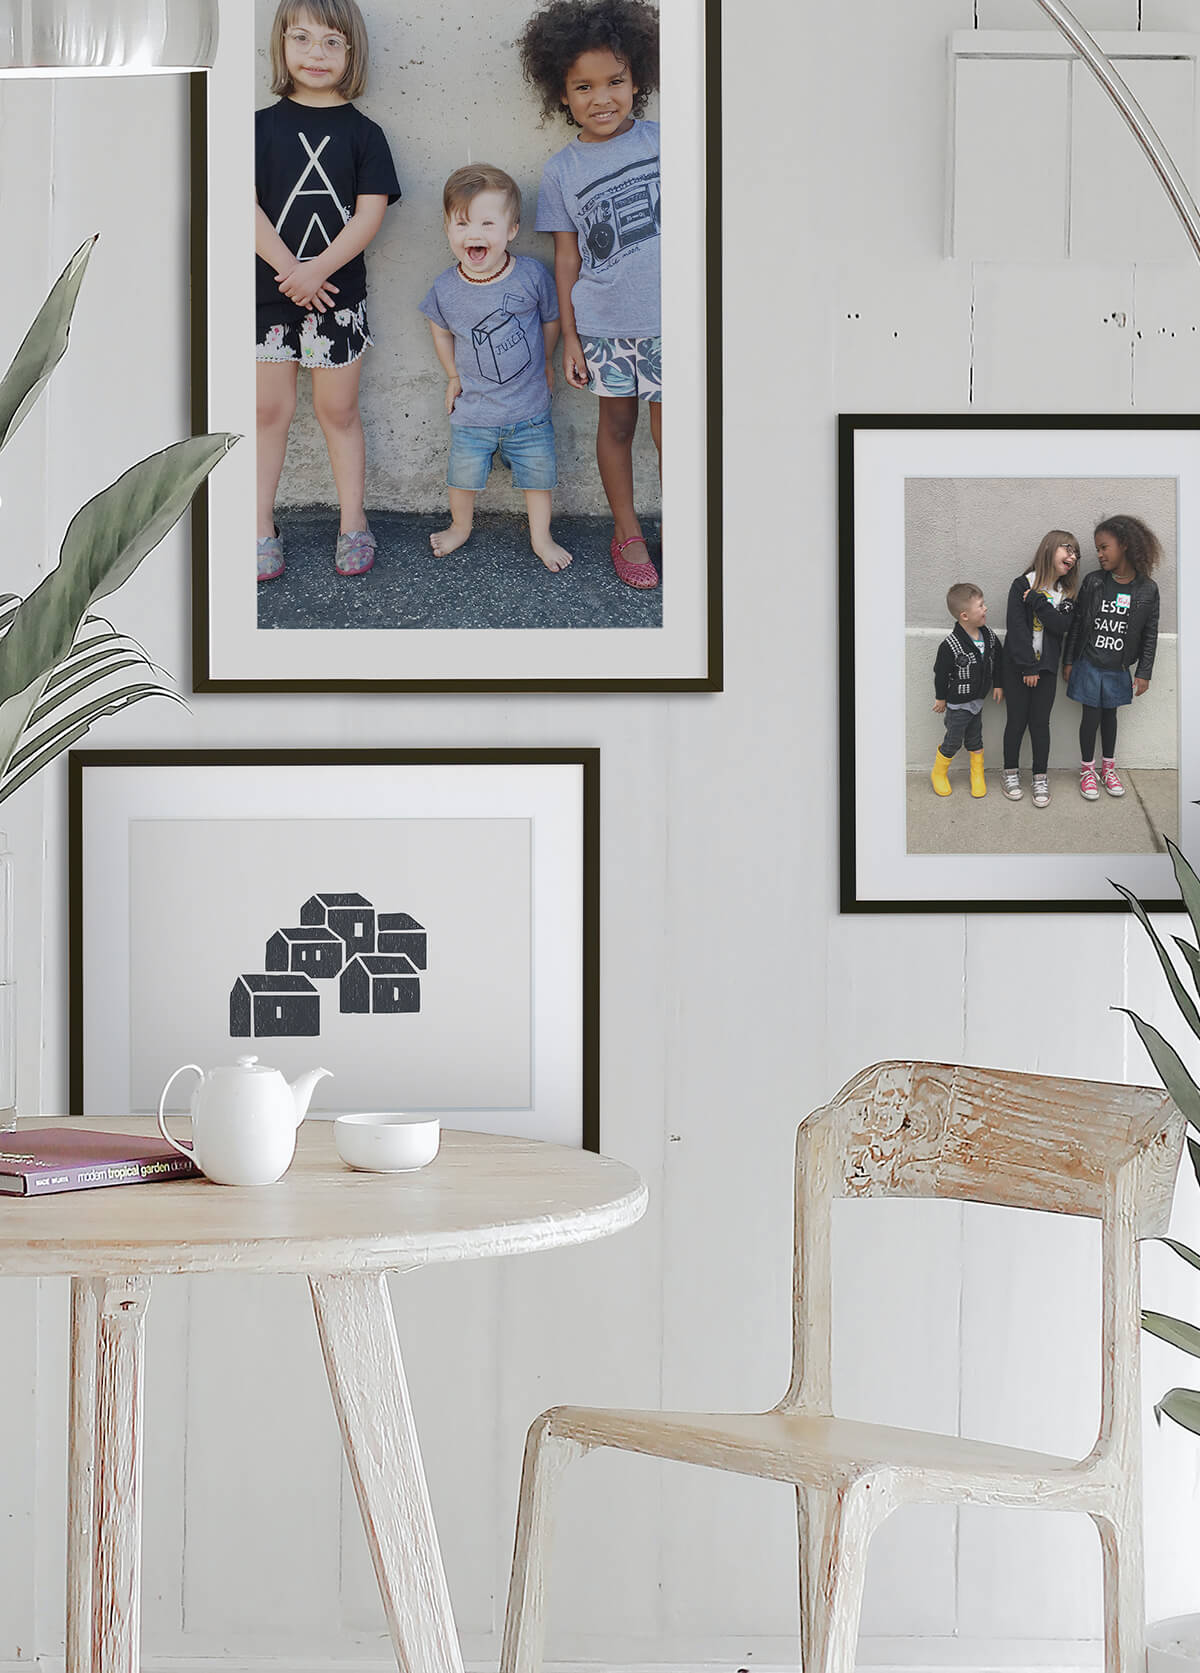 Asymmetrical gallery wall hung behind dining table